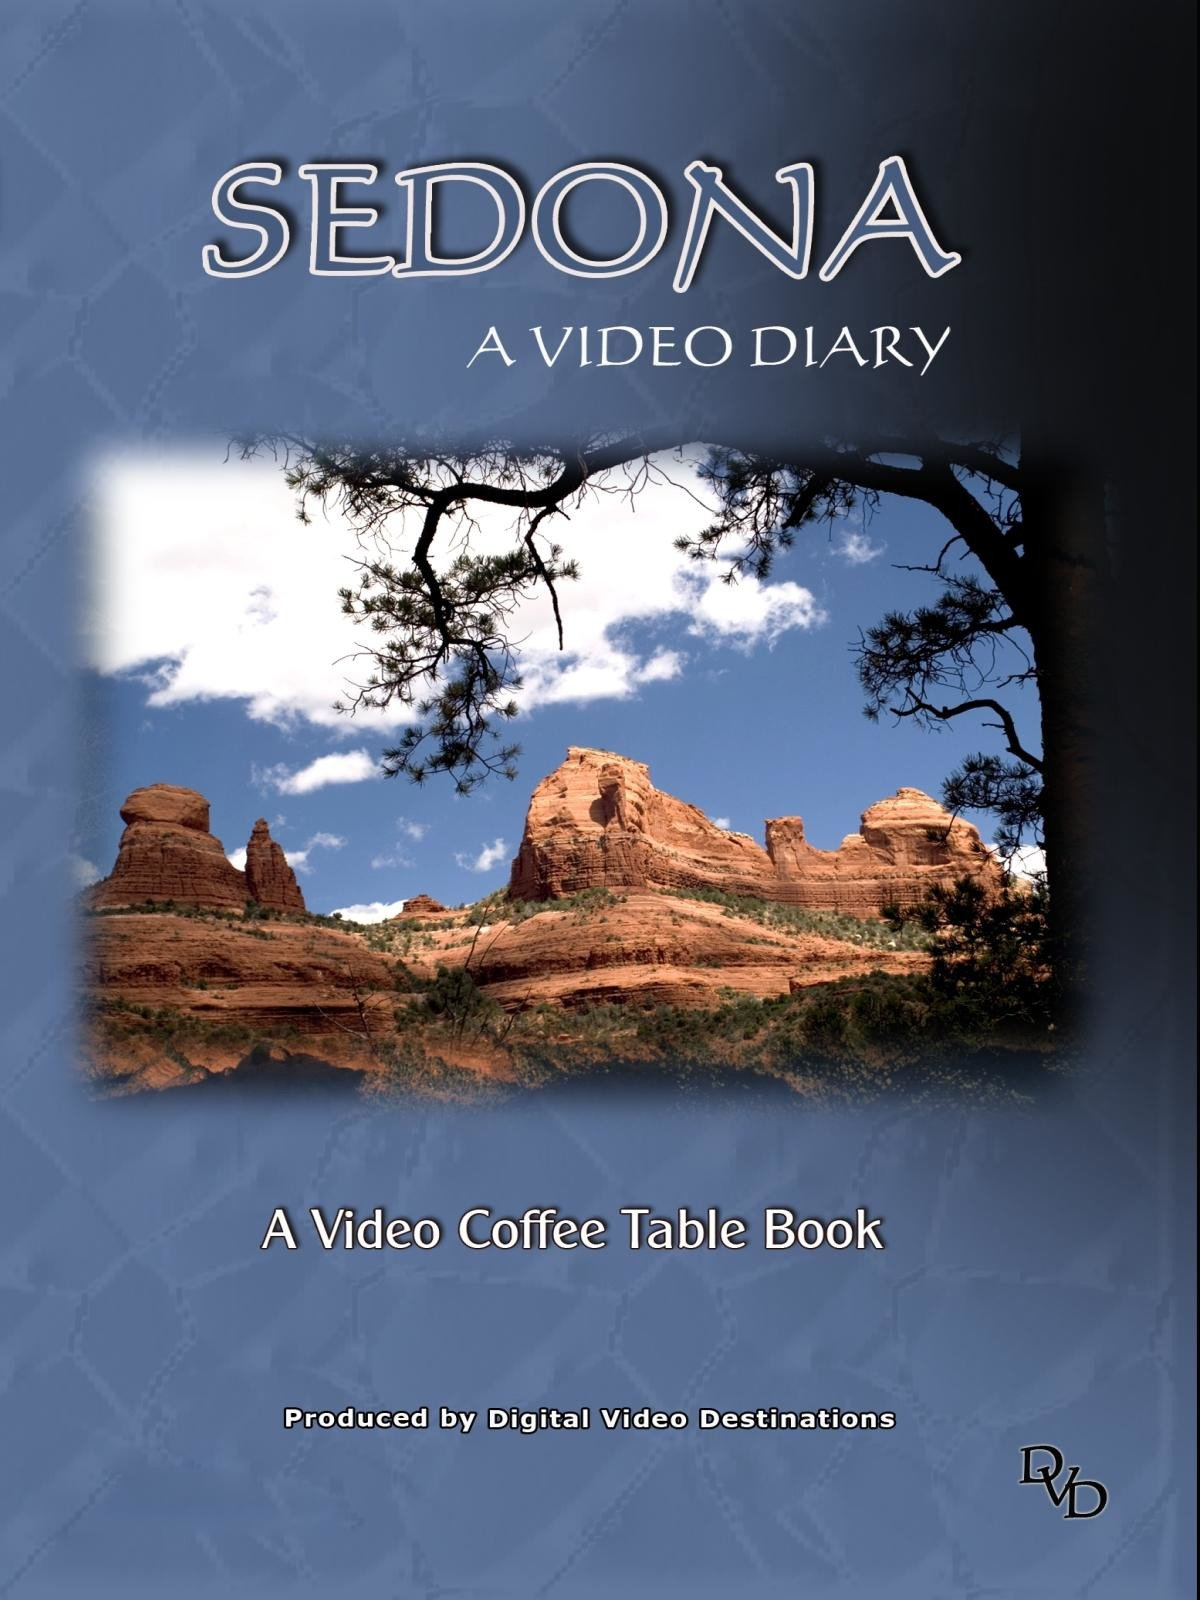 A Video Coffee Table Book - Sedona A Video Diary on Amazon Prime Video UK